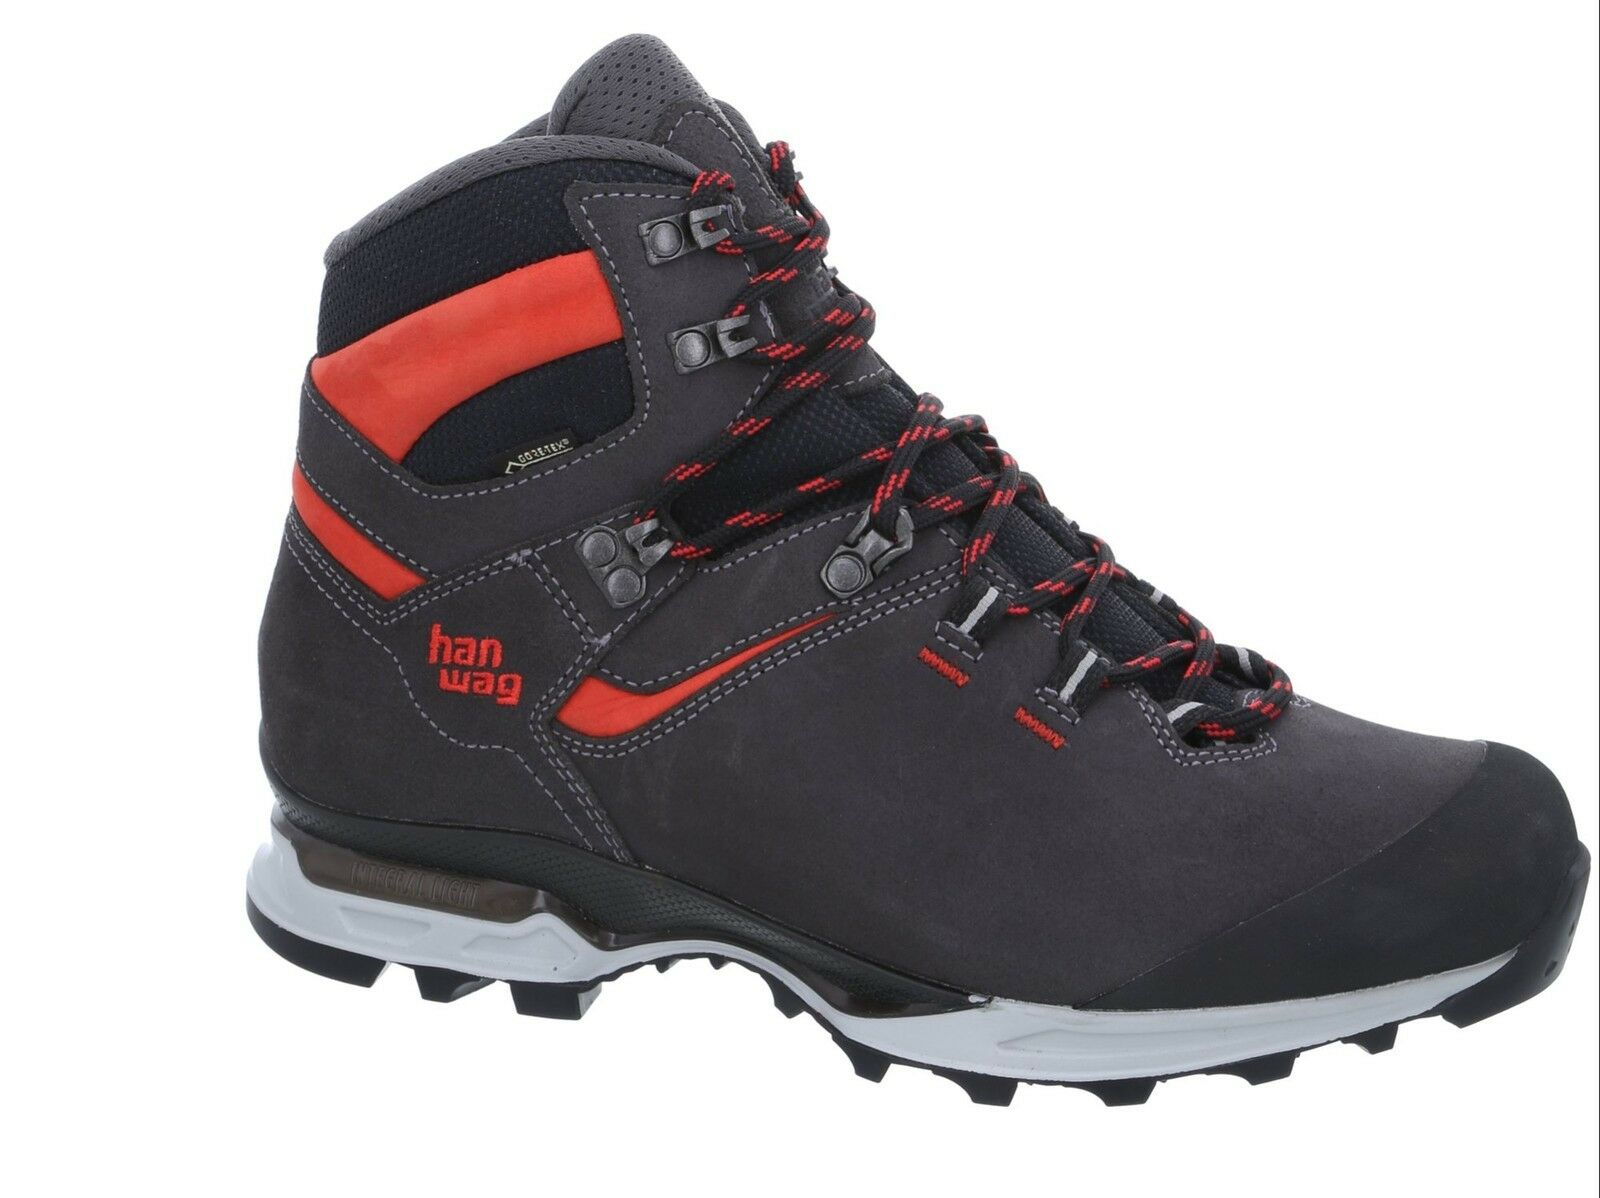 Hanwag Mountain shoes Tatra Light GTX Size 7,5 - 41,5 Asphalt -